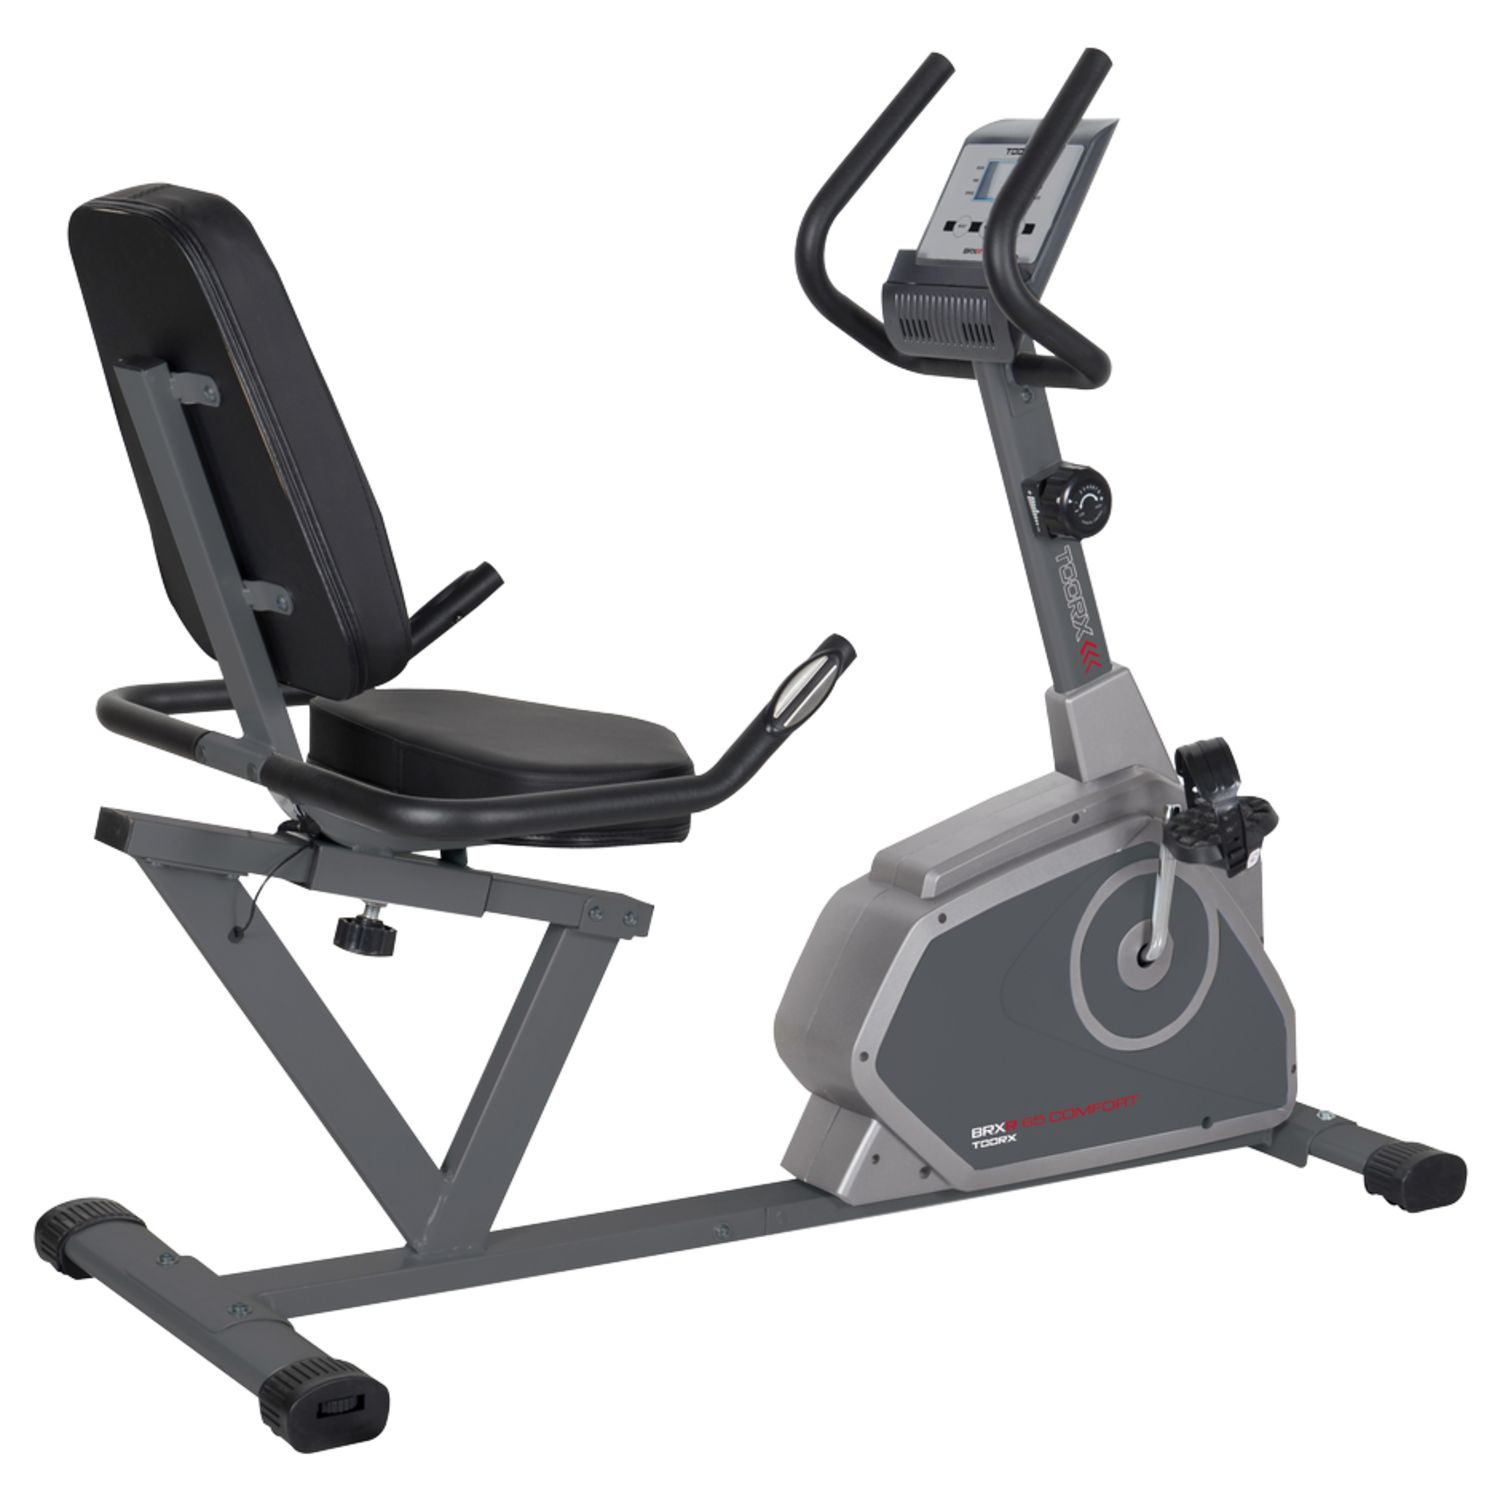 cyclette orizzontale toorx brx r65 recumbent